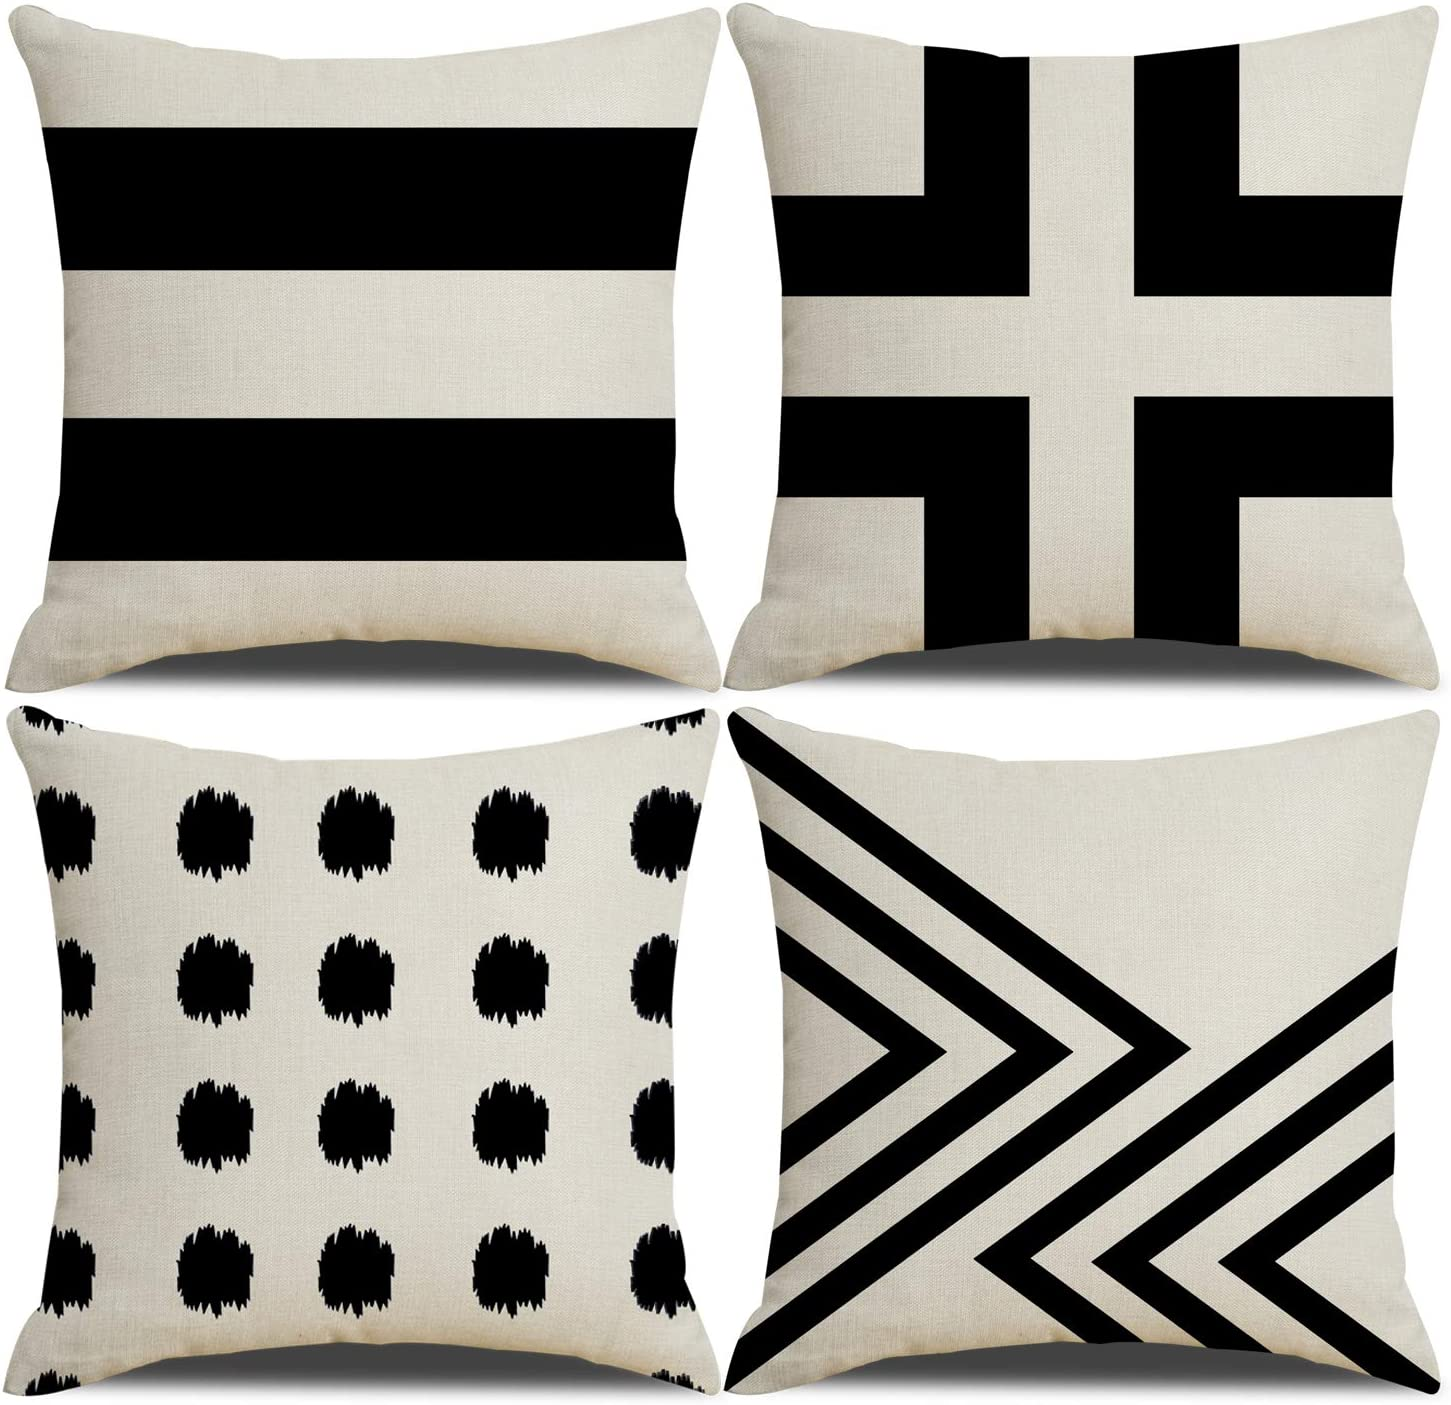 QIQIANY Set of 4 Modern Geometric Decorative Pillow Covers 18x18 Inch Square Linen Black Farmhouse Decor Throw Pillows Home Decor Cushion Covers for Couch Sofa Living Room